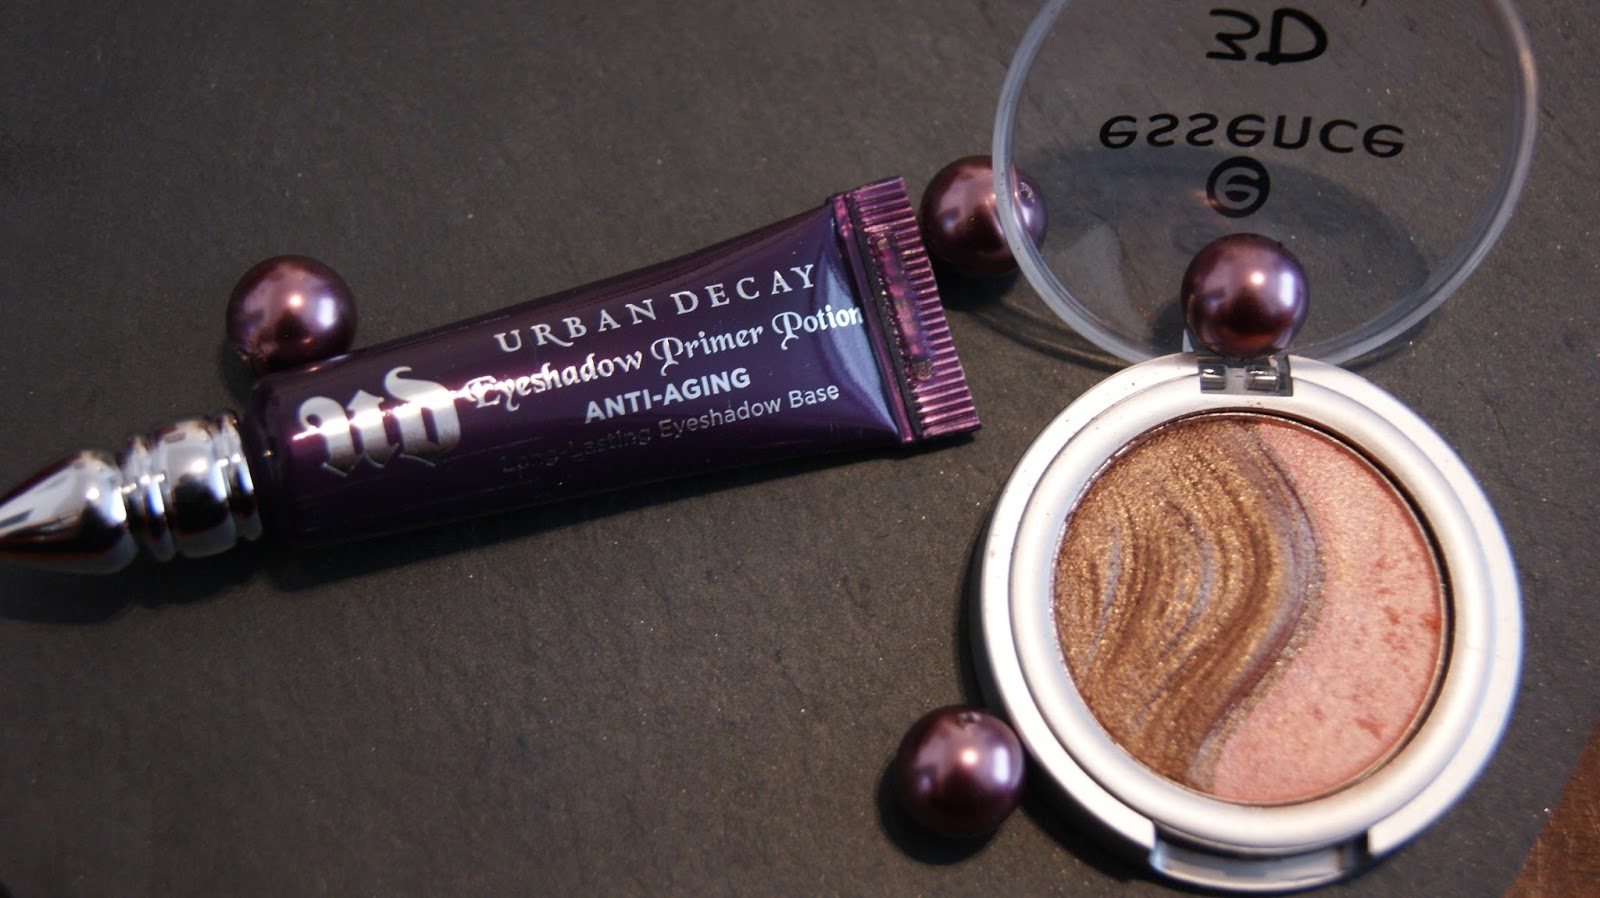 urban decay primer potion tube with eyeshadow